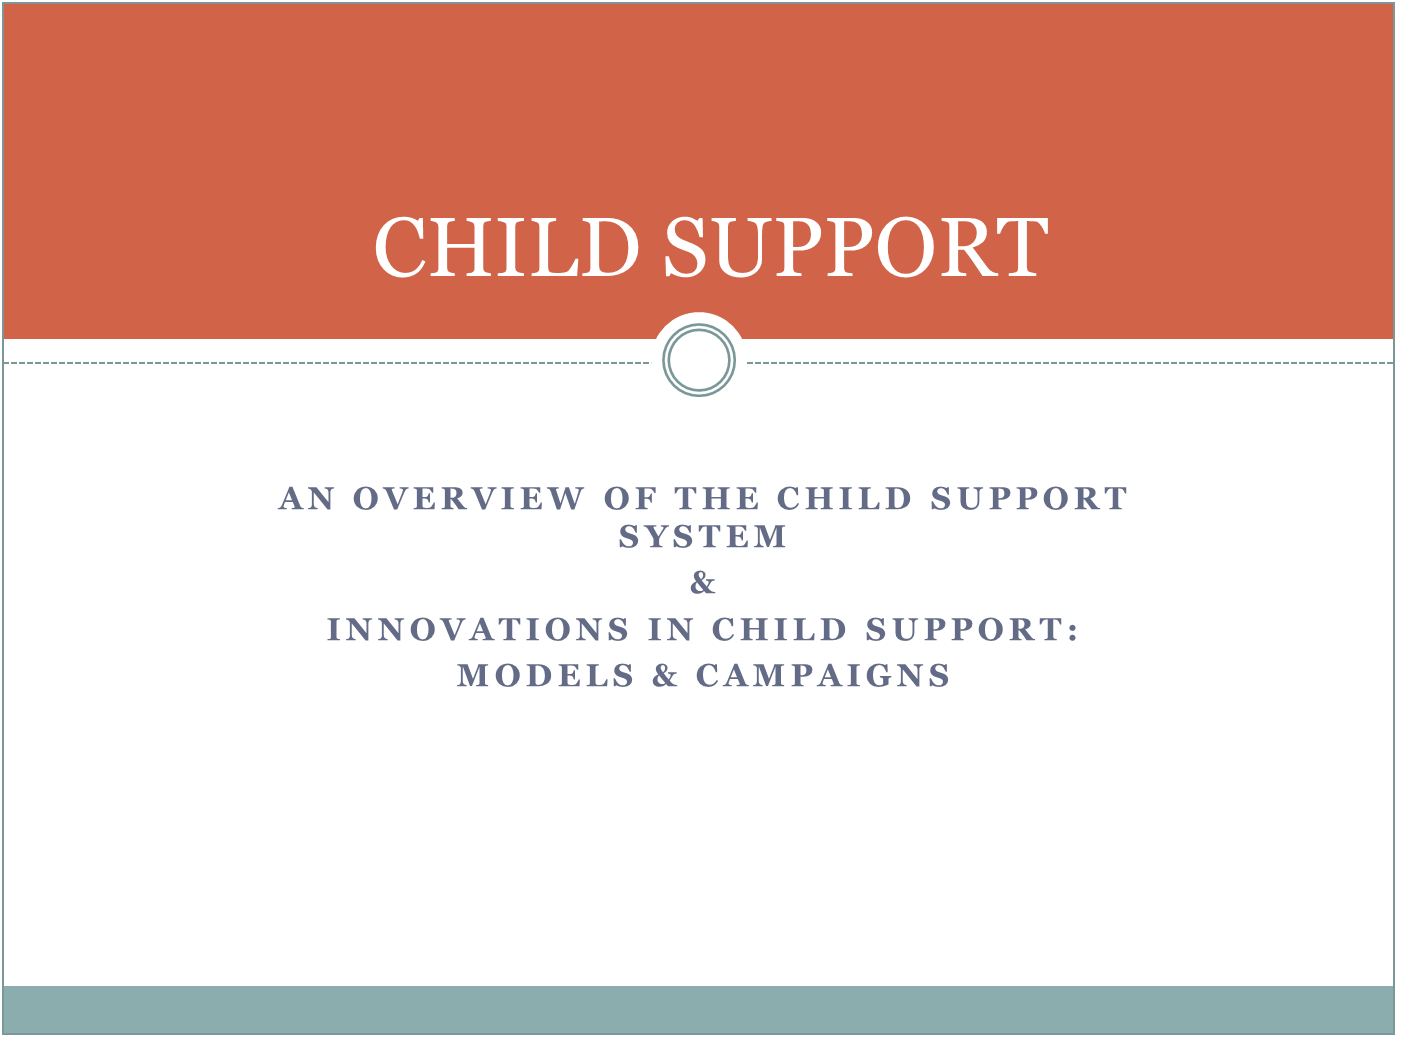 Overview of the Child Support System and Innovations in Child Support Policy and Practice